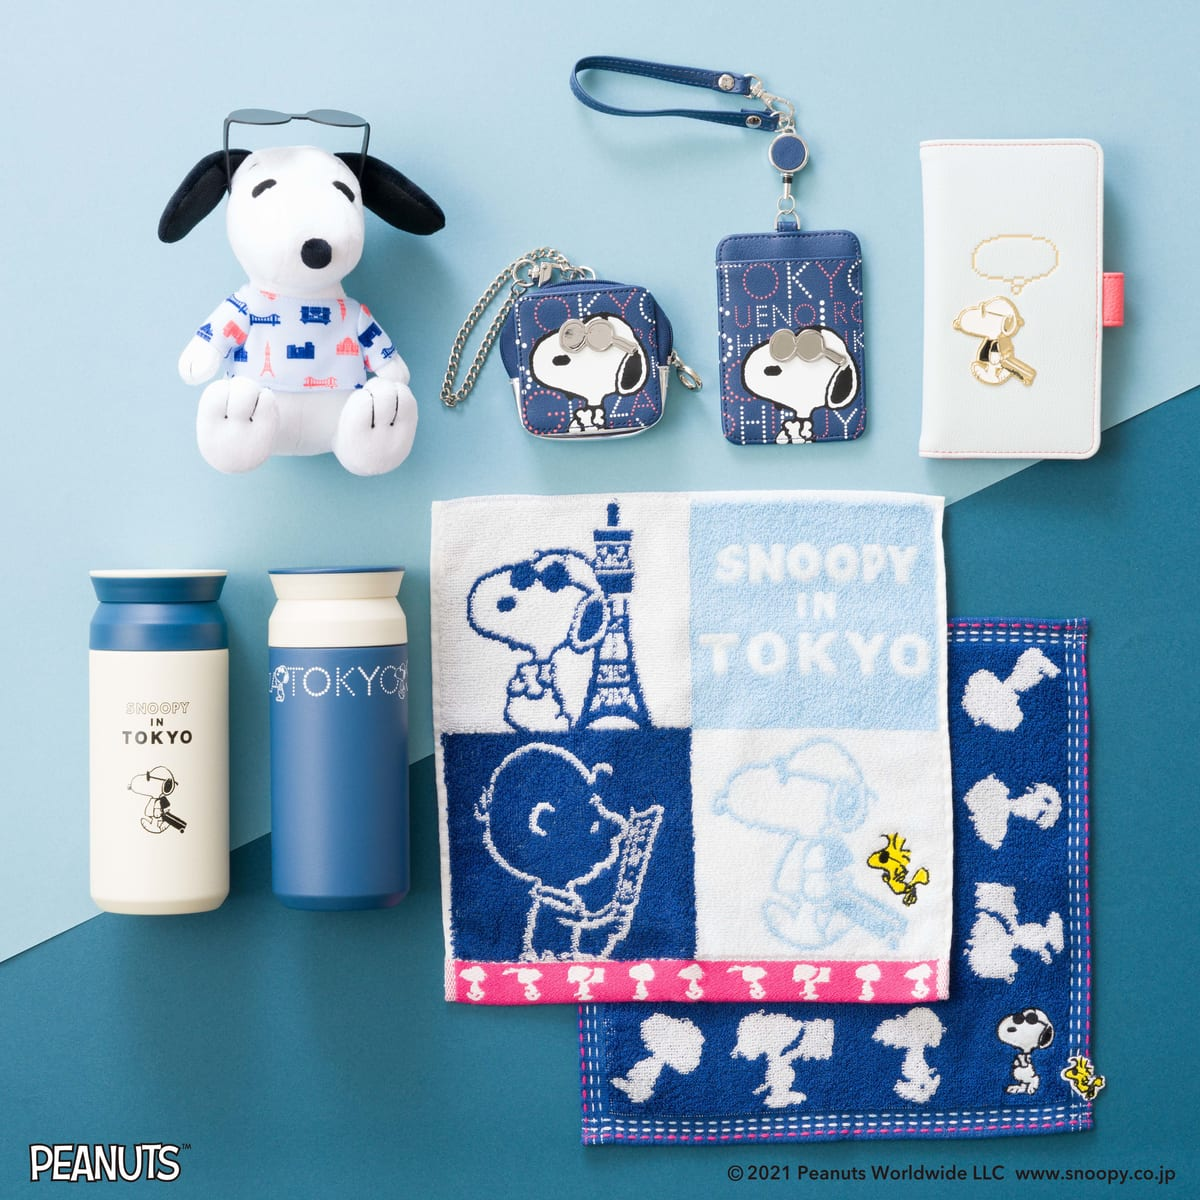 Afternoon Tea×PEANUTS「SNOOPY IN TOKYO」モチーフ コラボレーションアイテム